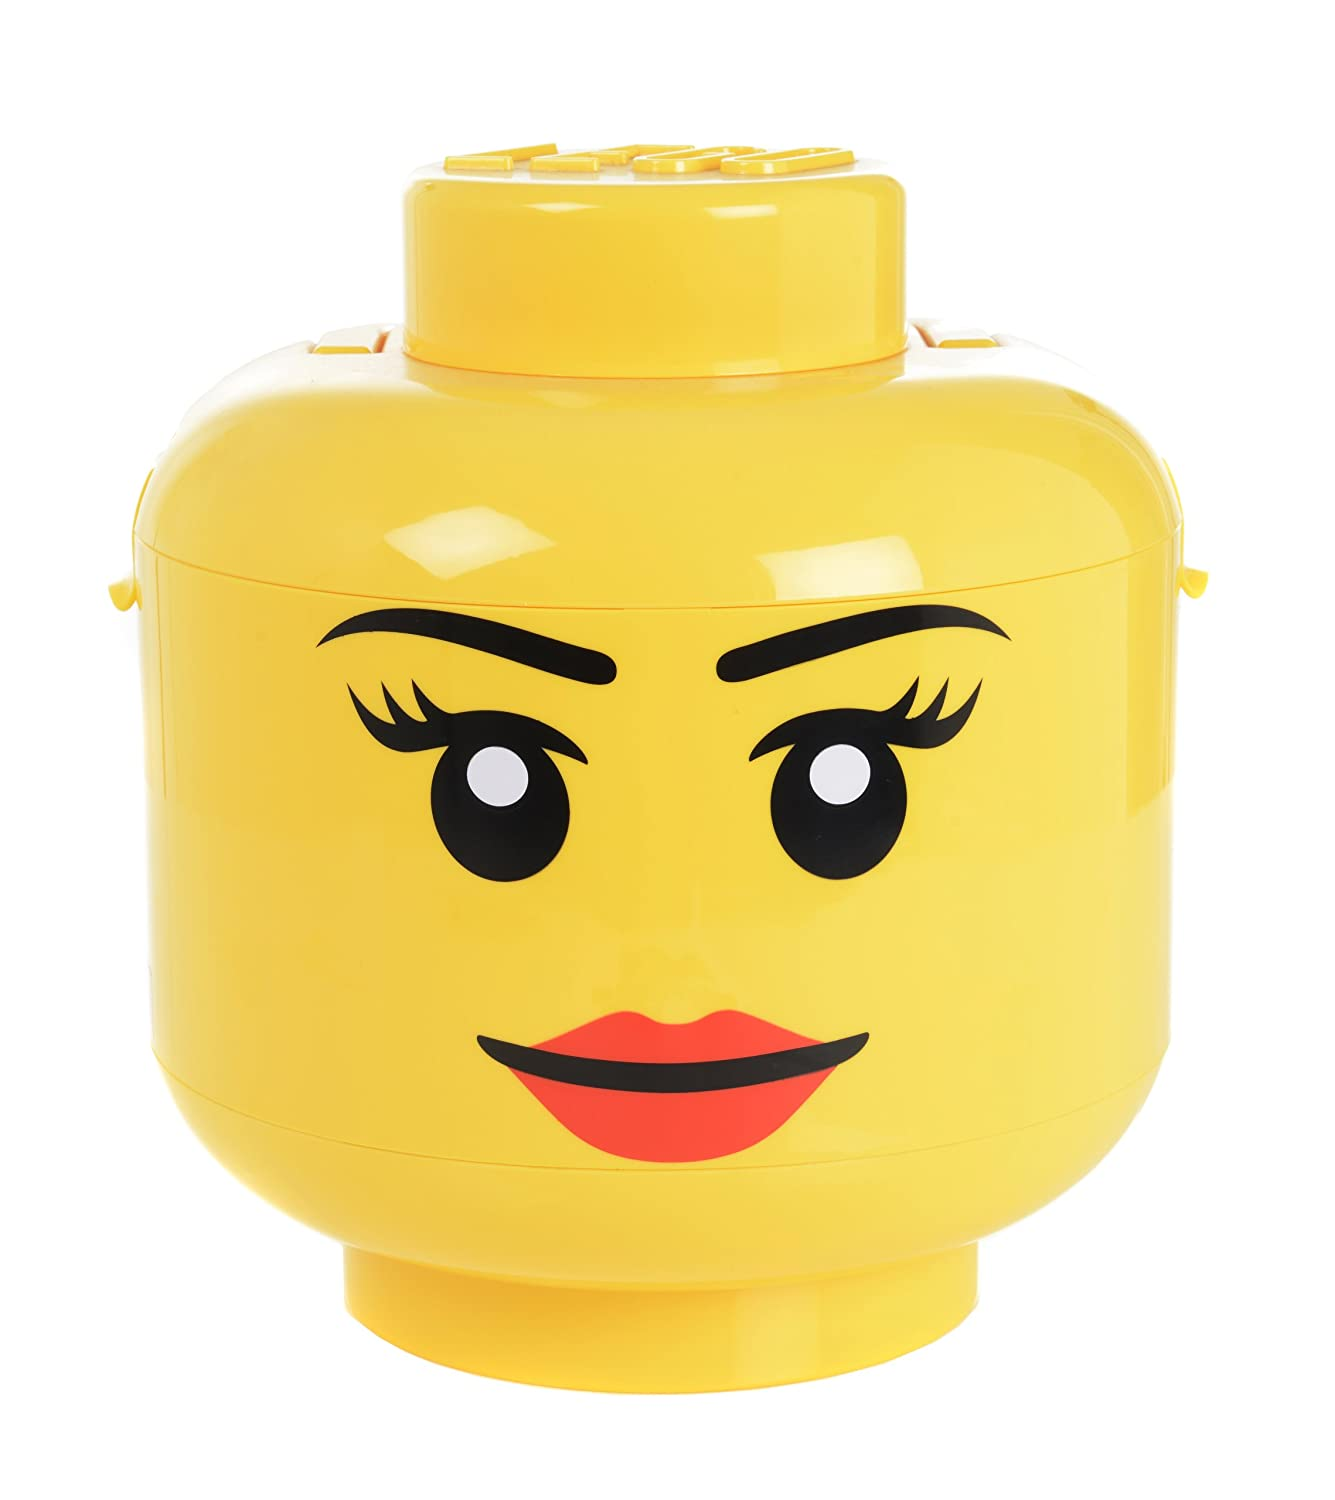 Lego Face Www Pixshark Com Images Galleries With A Bite